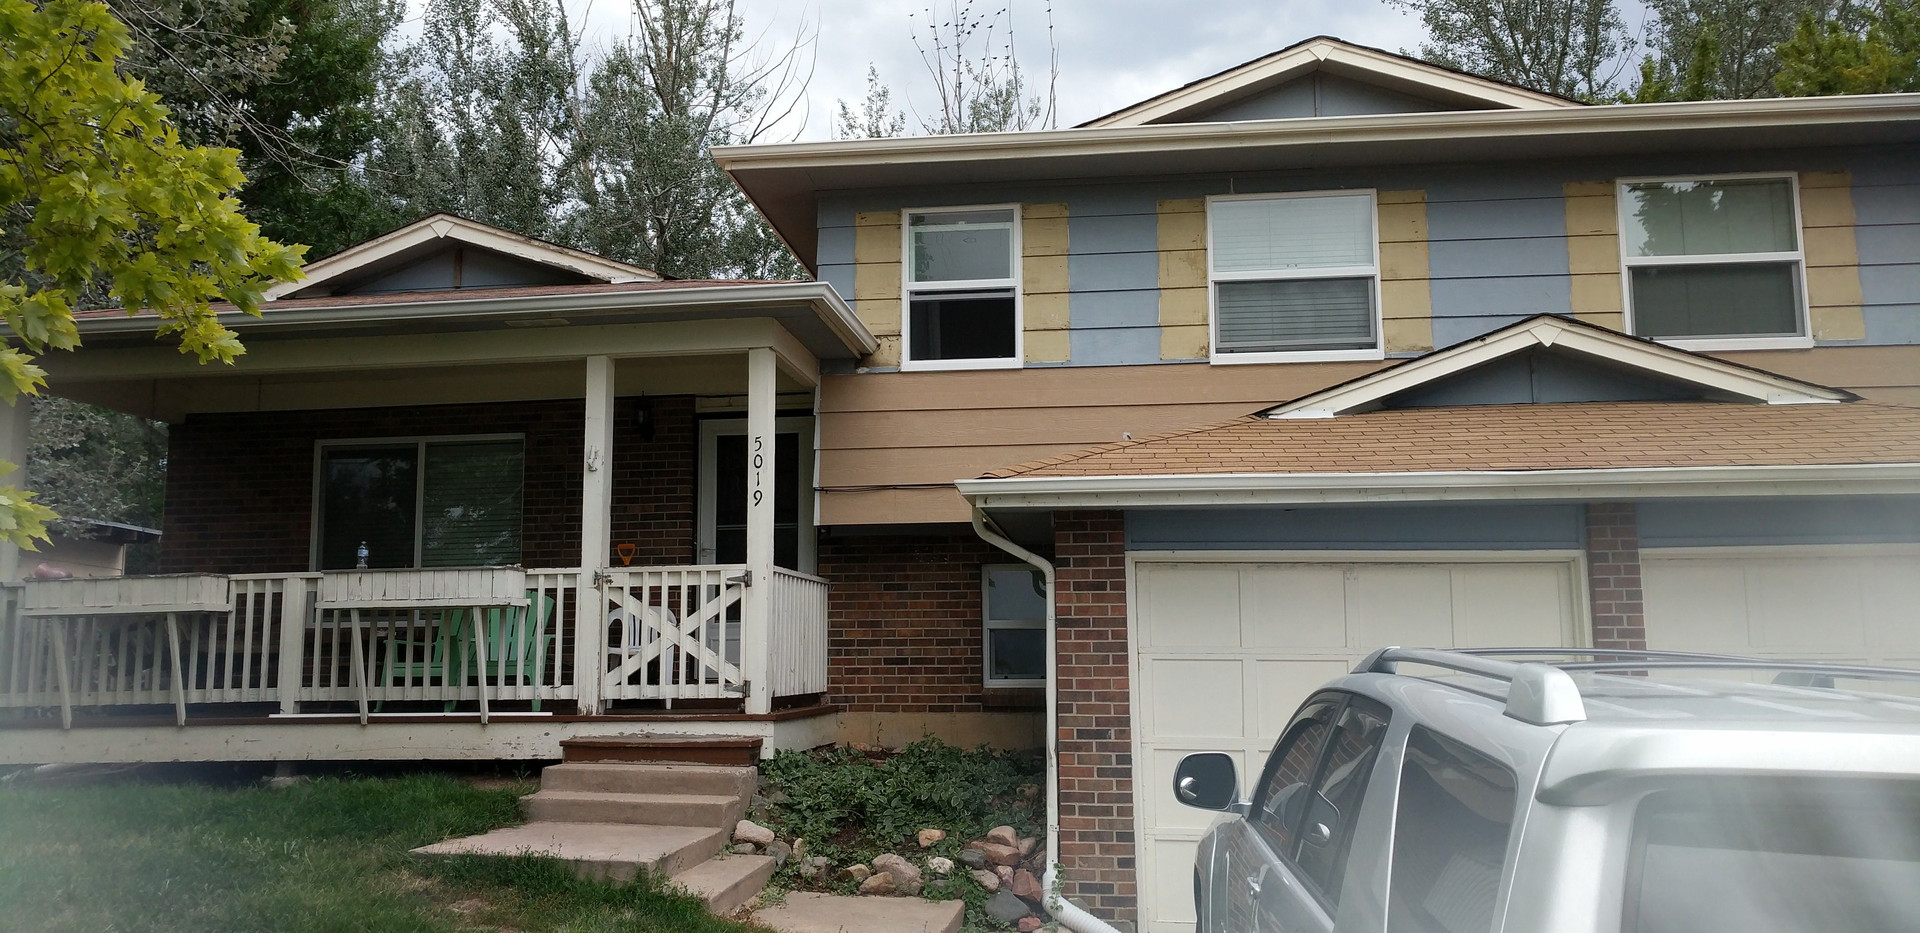 Siding repair and window install-